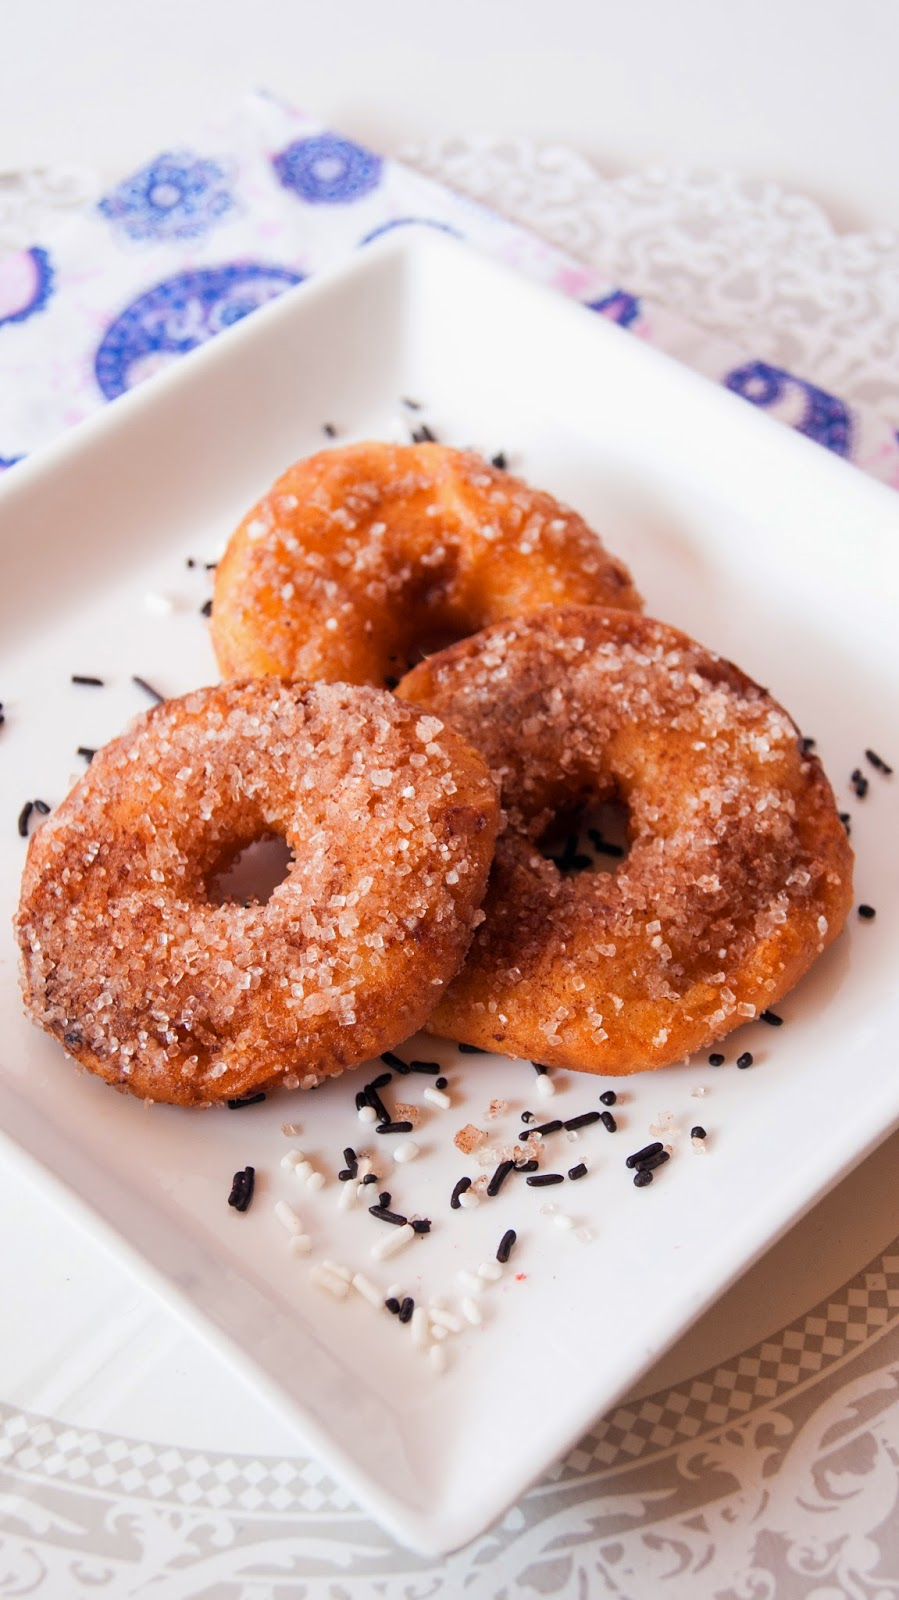 Always Hungry: Apple beignets with cinnamon sugar